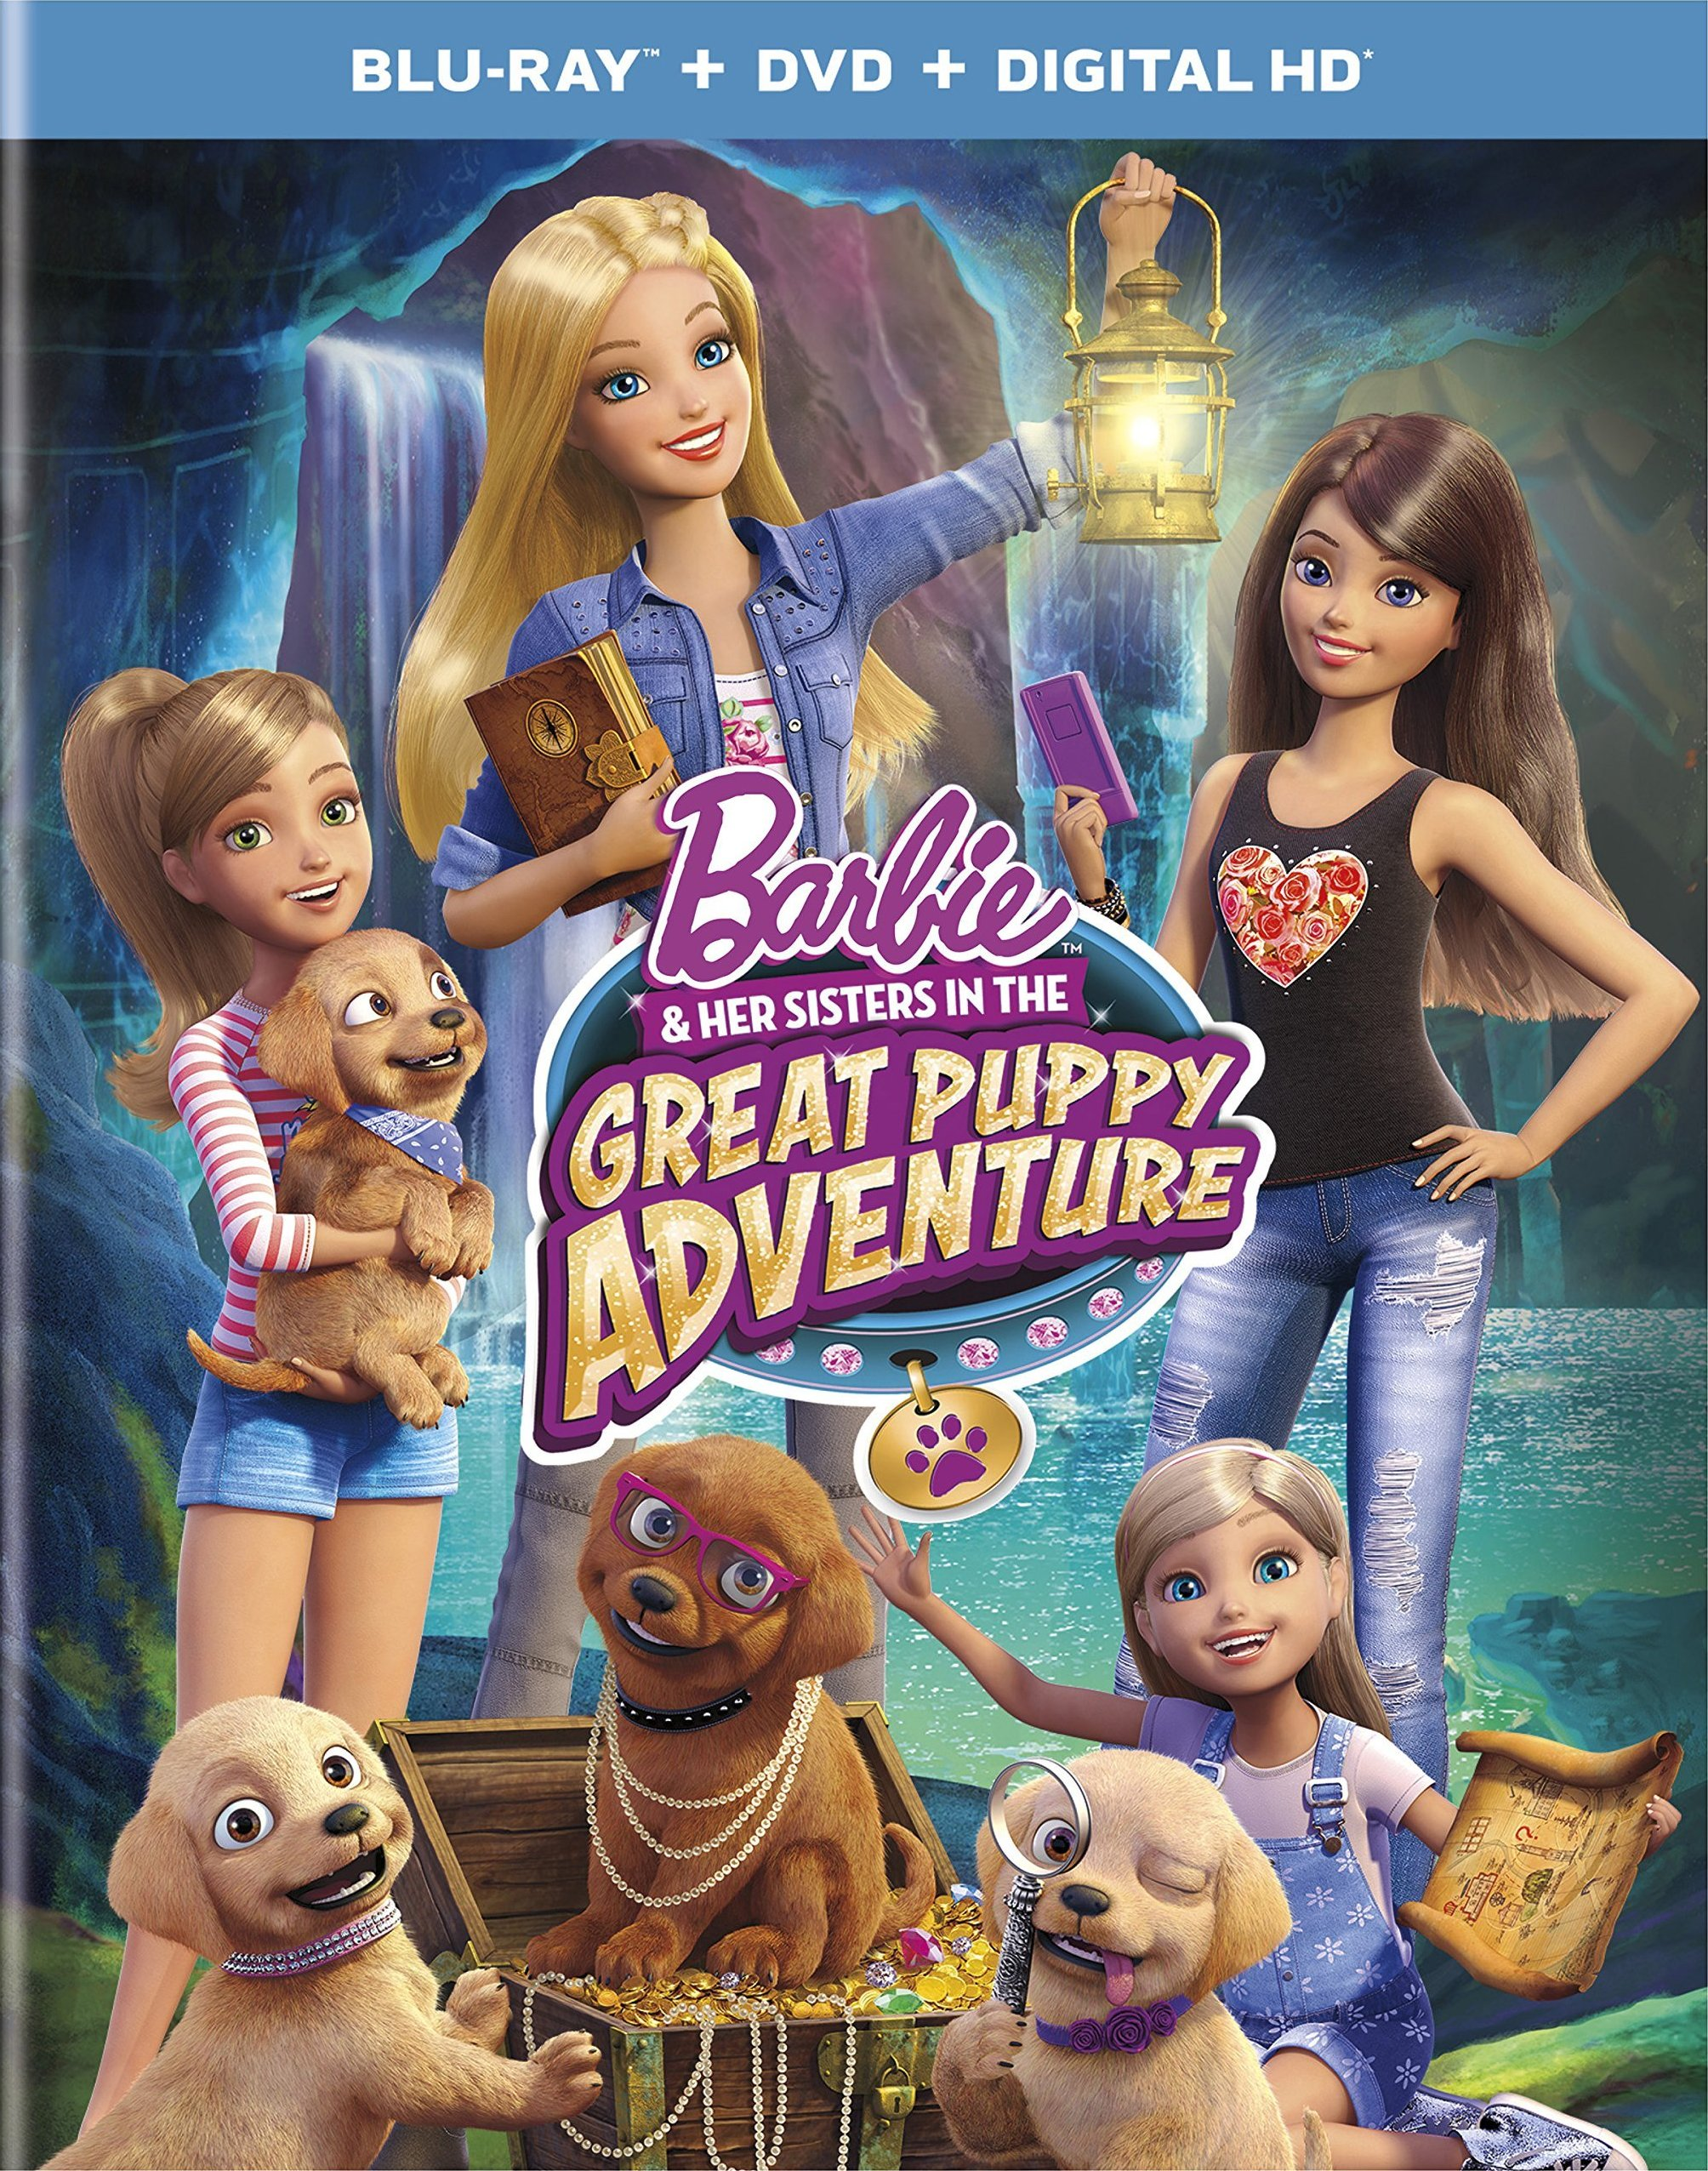 Barbie & Her Sisters In The Great Puppy Adventure Blu-ray Review